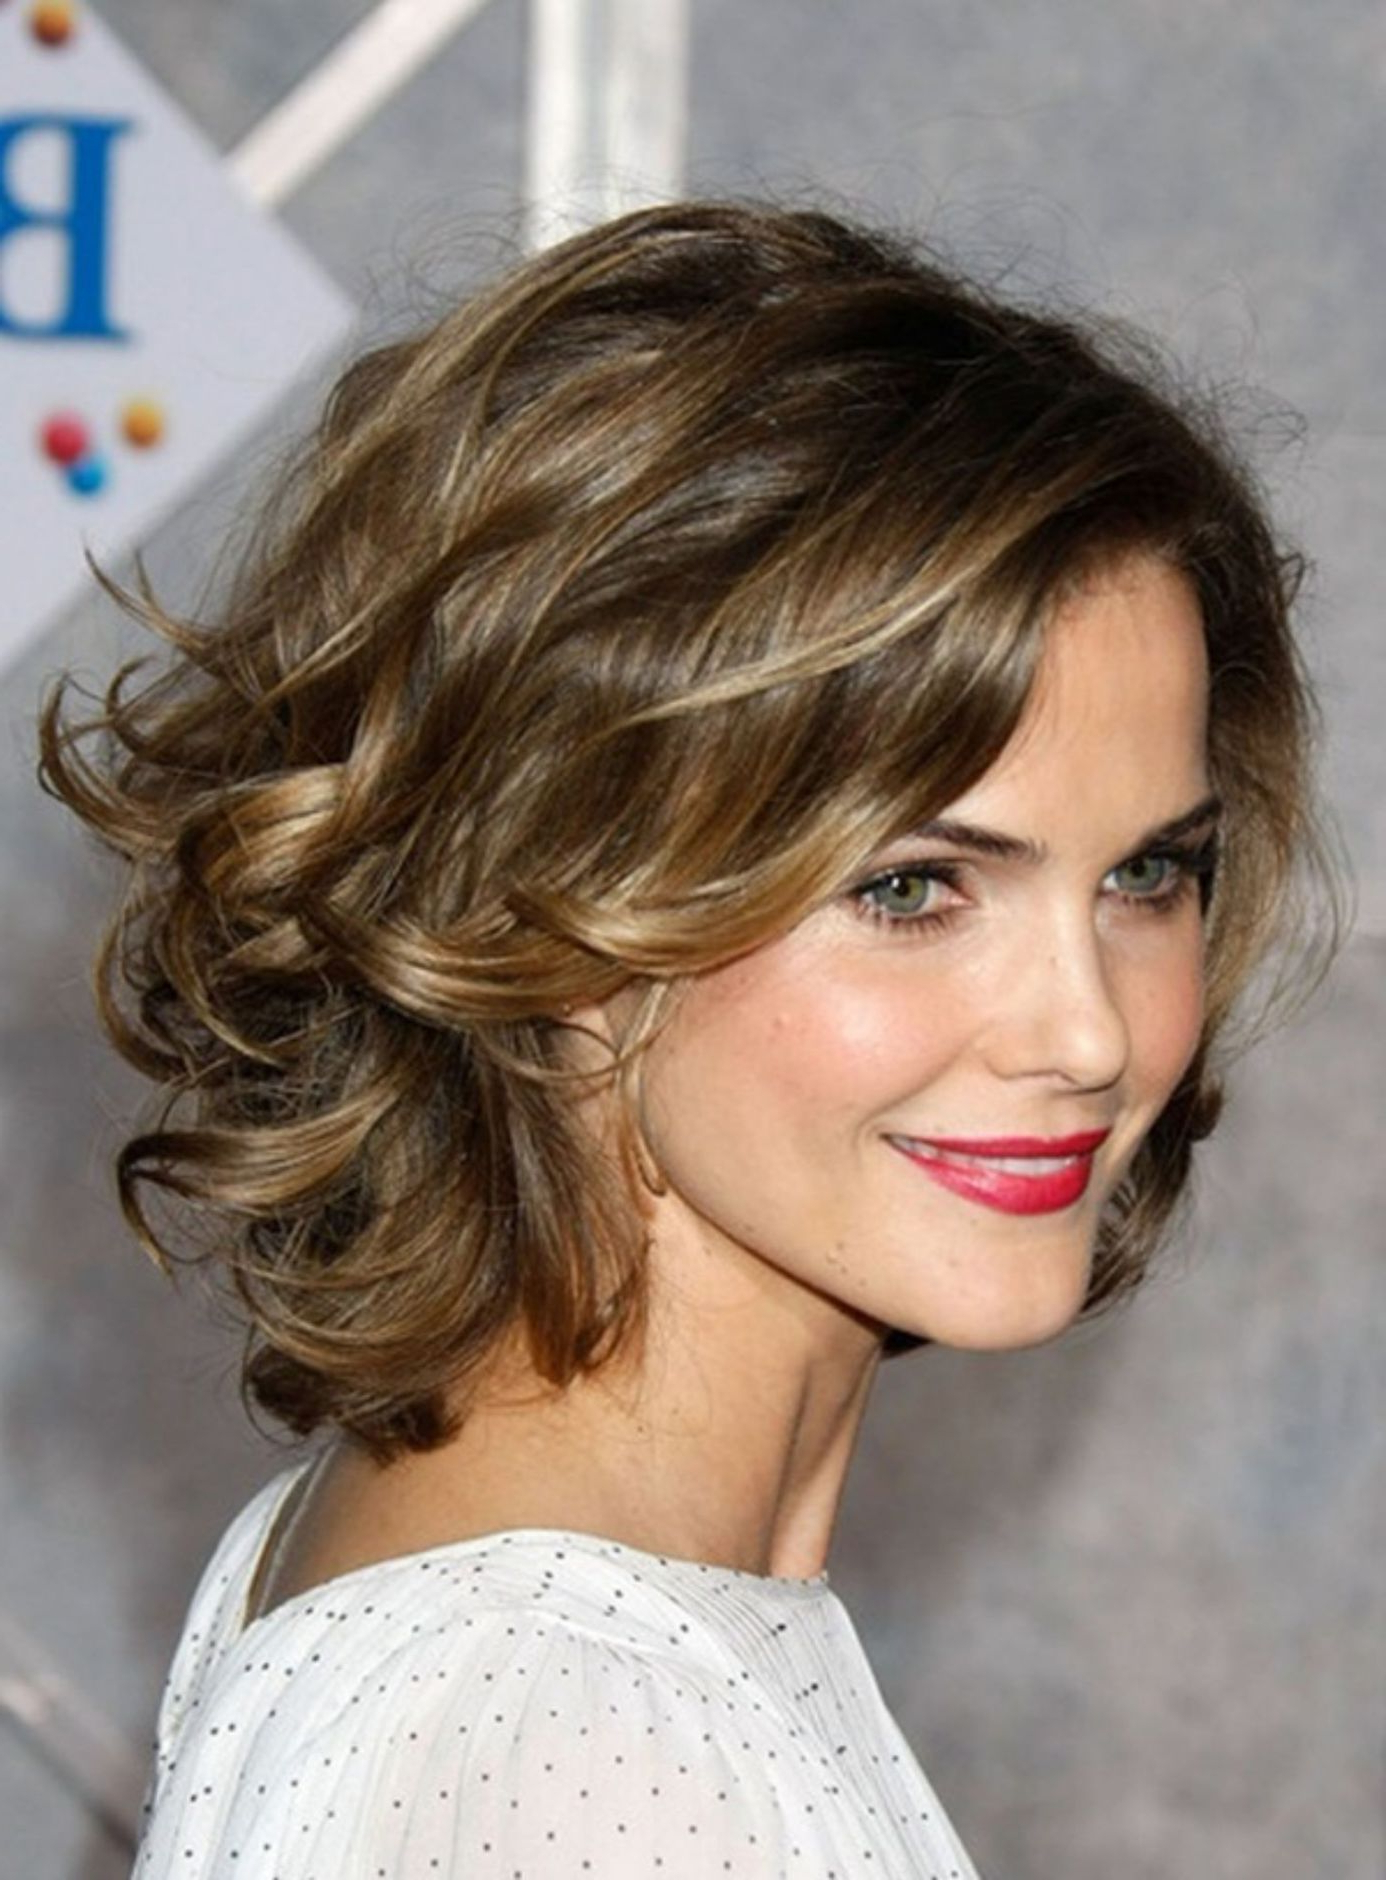 2018 Medium Hairstyles For Thin Curly Hair With 70 Darn Cool Medium Length Hairstyles For Thin Hair (Gallery 7 of 20)